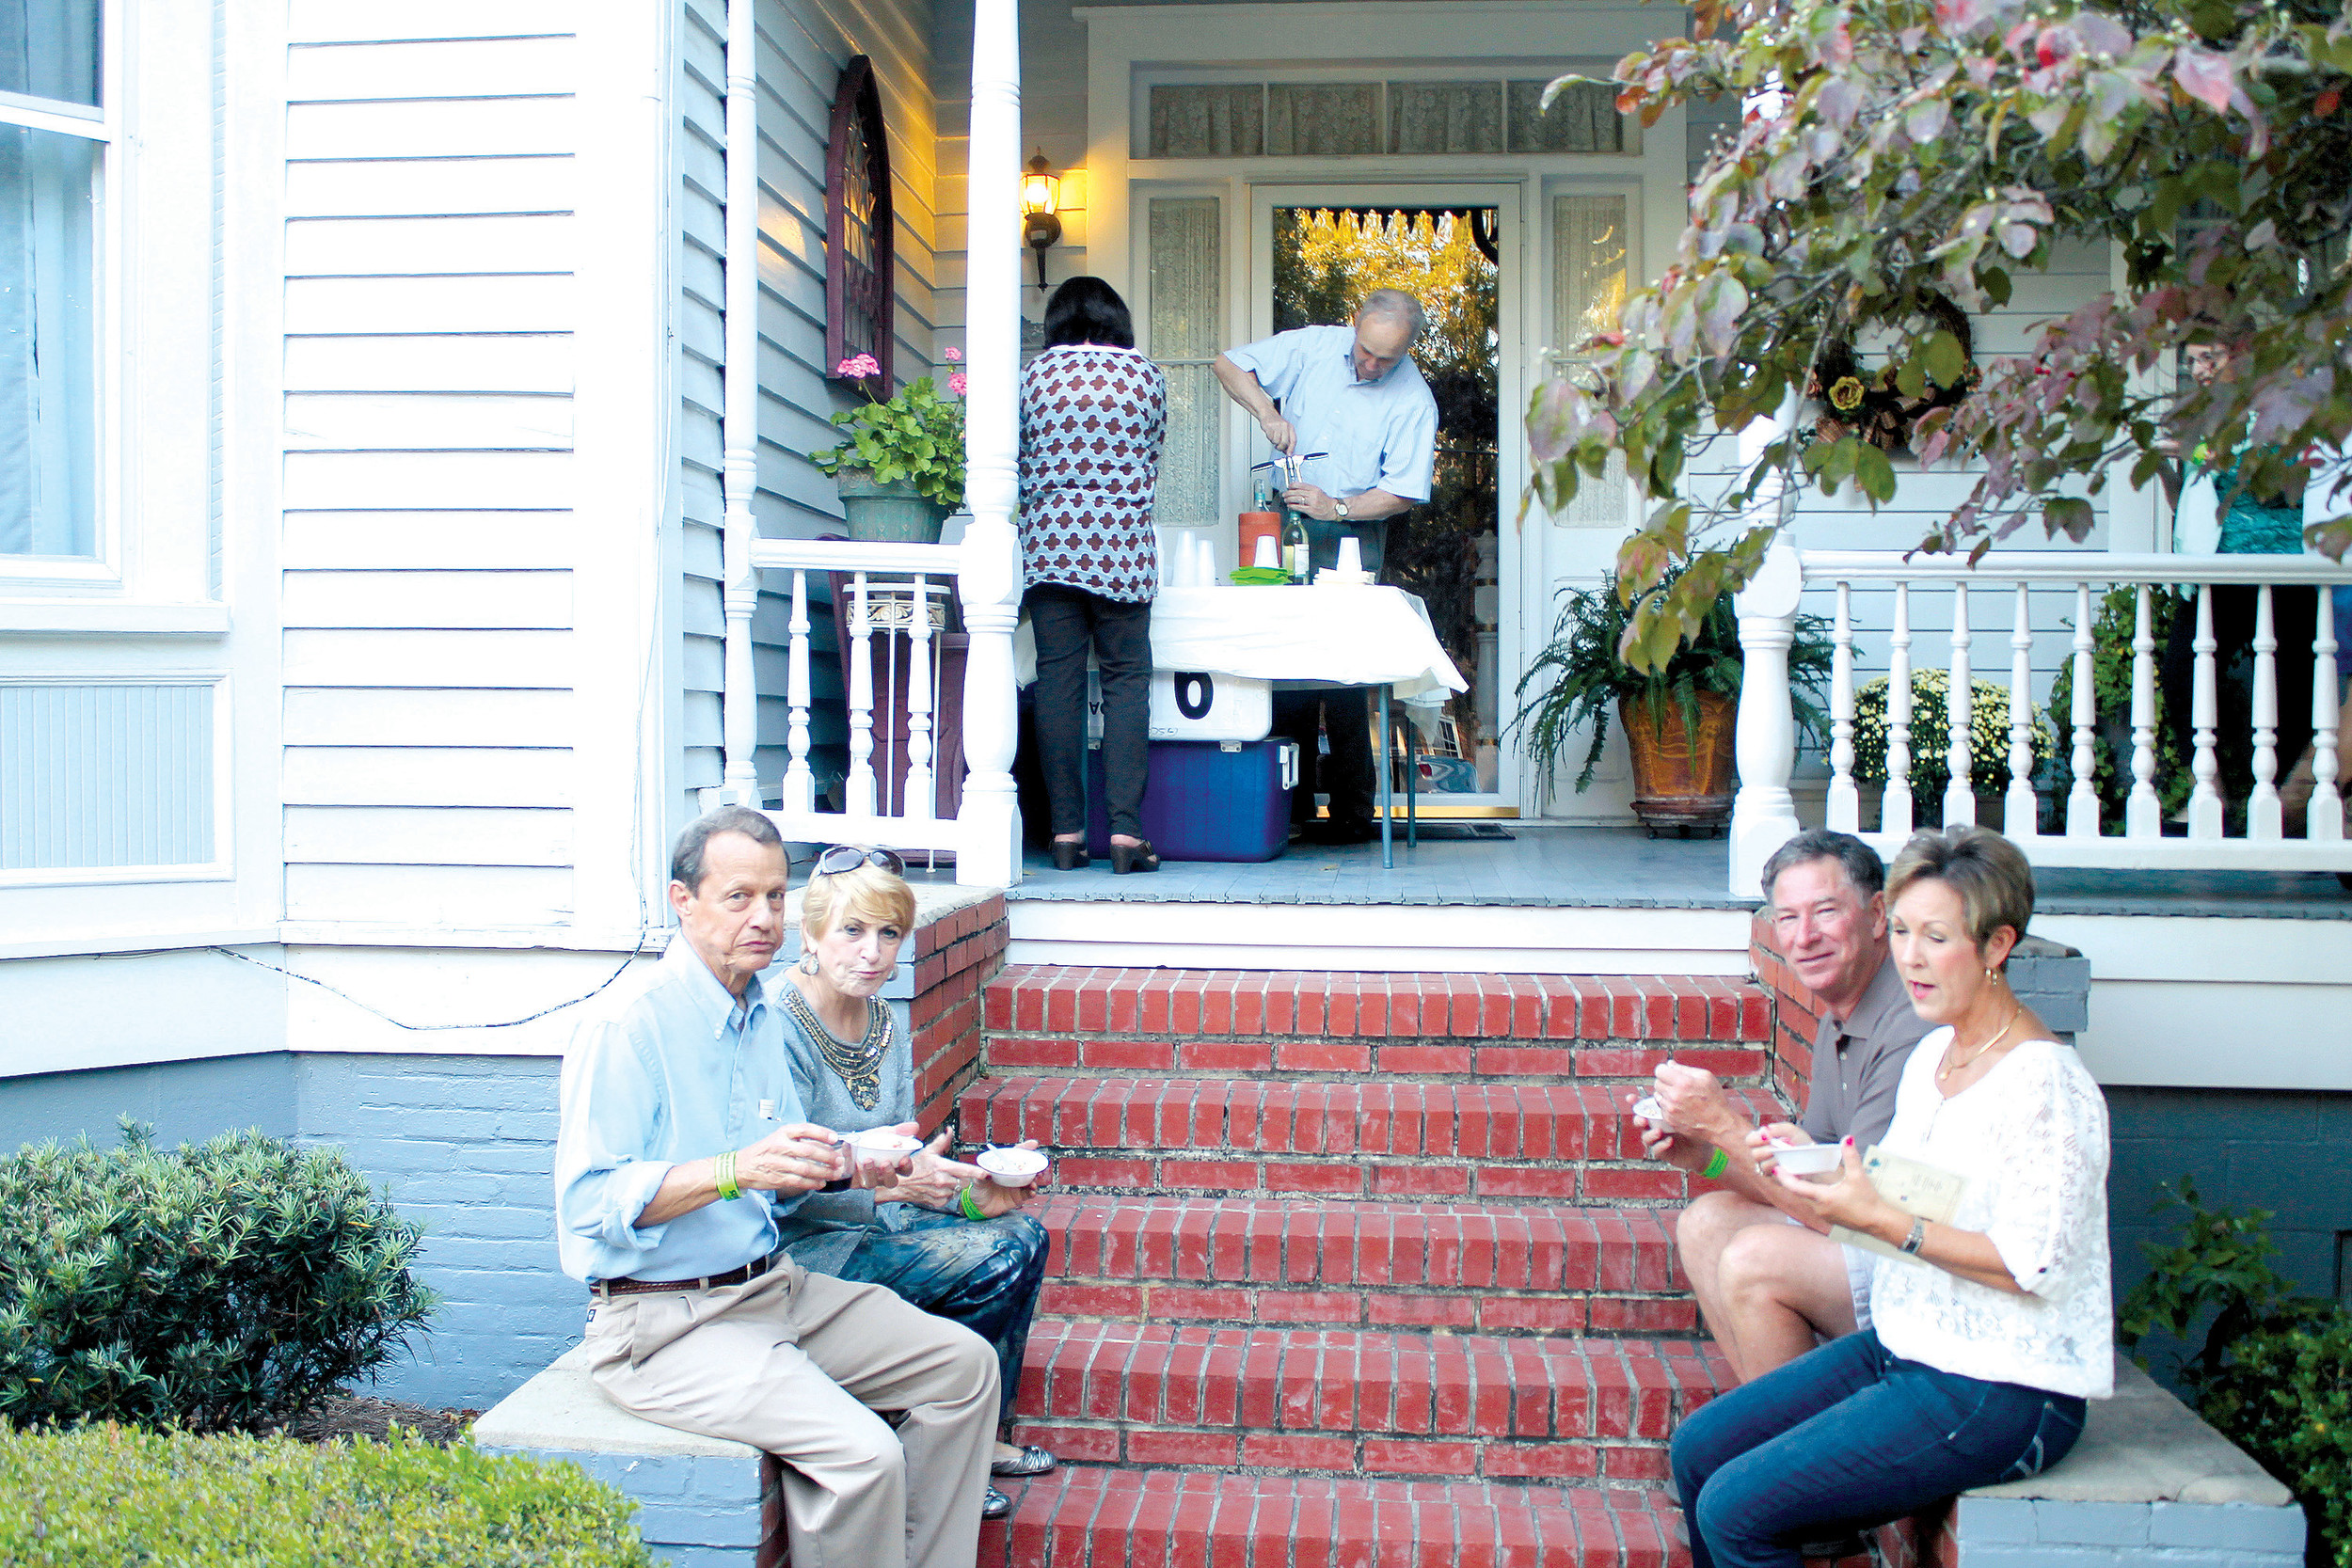 Participants in the 2016 Porches of Sumter event sponsored by Greater Sumter Chamber of Commerce with signature sponsor FTC enjoy a chat and some good food. This year's event will take place from 6 to 9 p.m. Thursday.